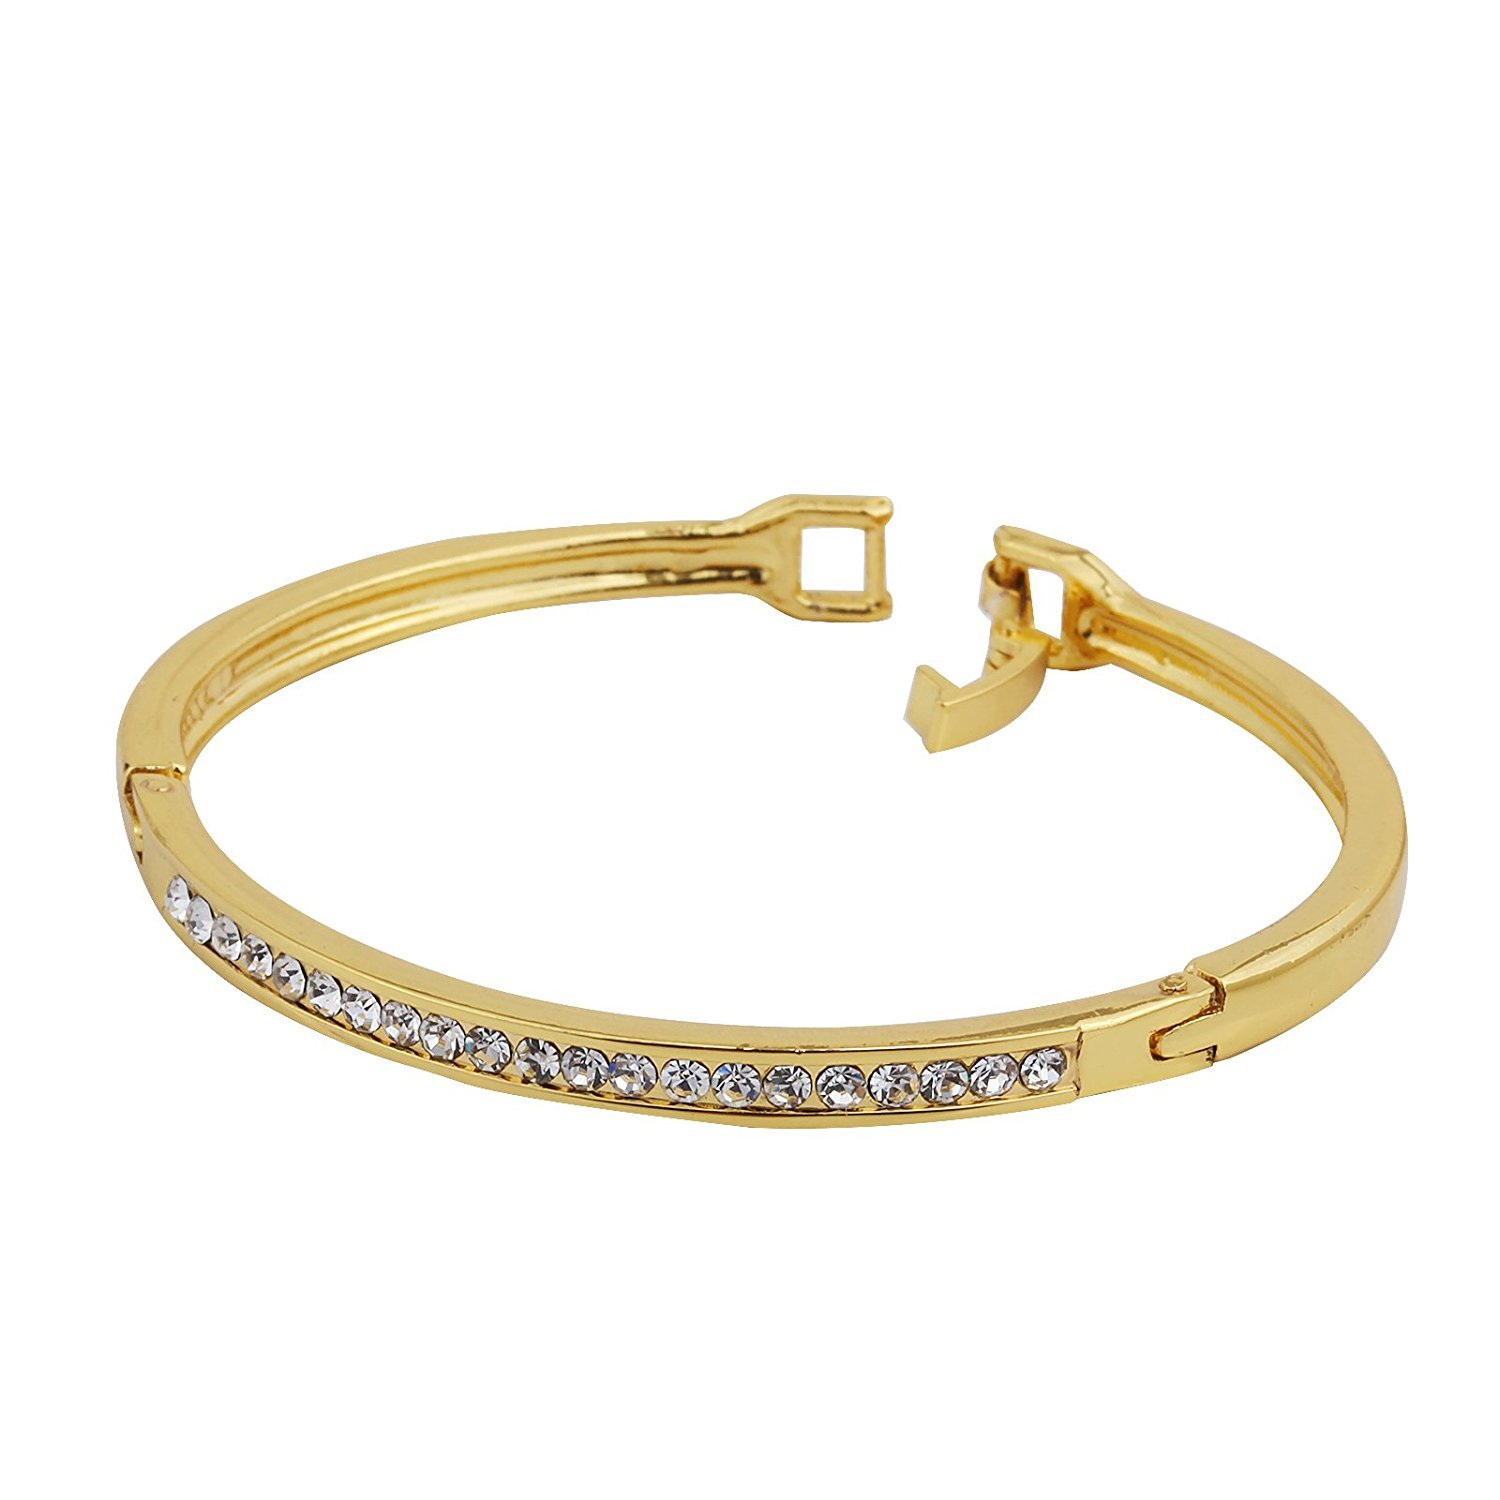 DVANIS Bangle Gold Plated Bangle with Diamante Crystal Bracelet Diameter:2.2In